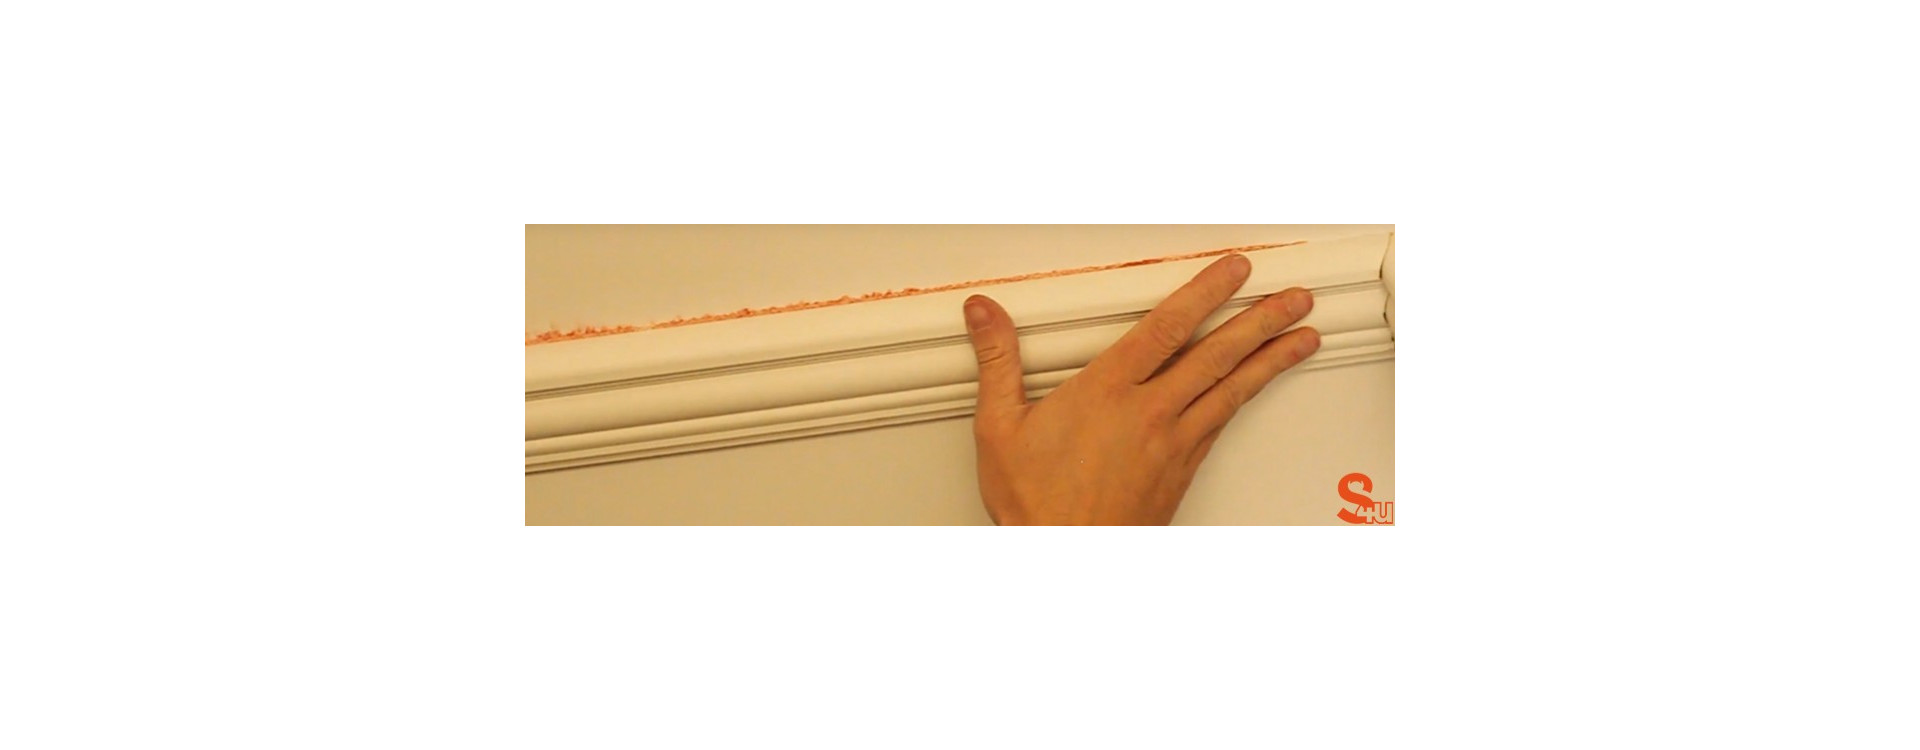 How to Fit a Dado Rail